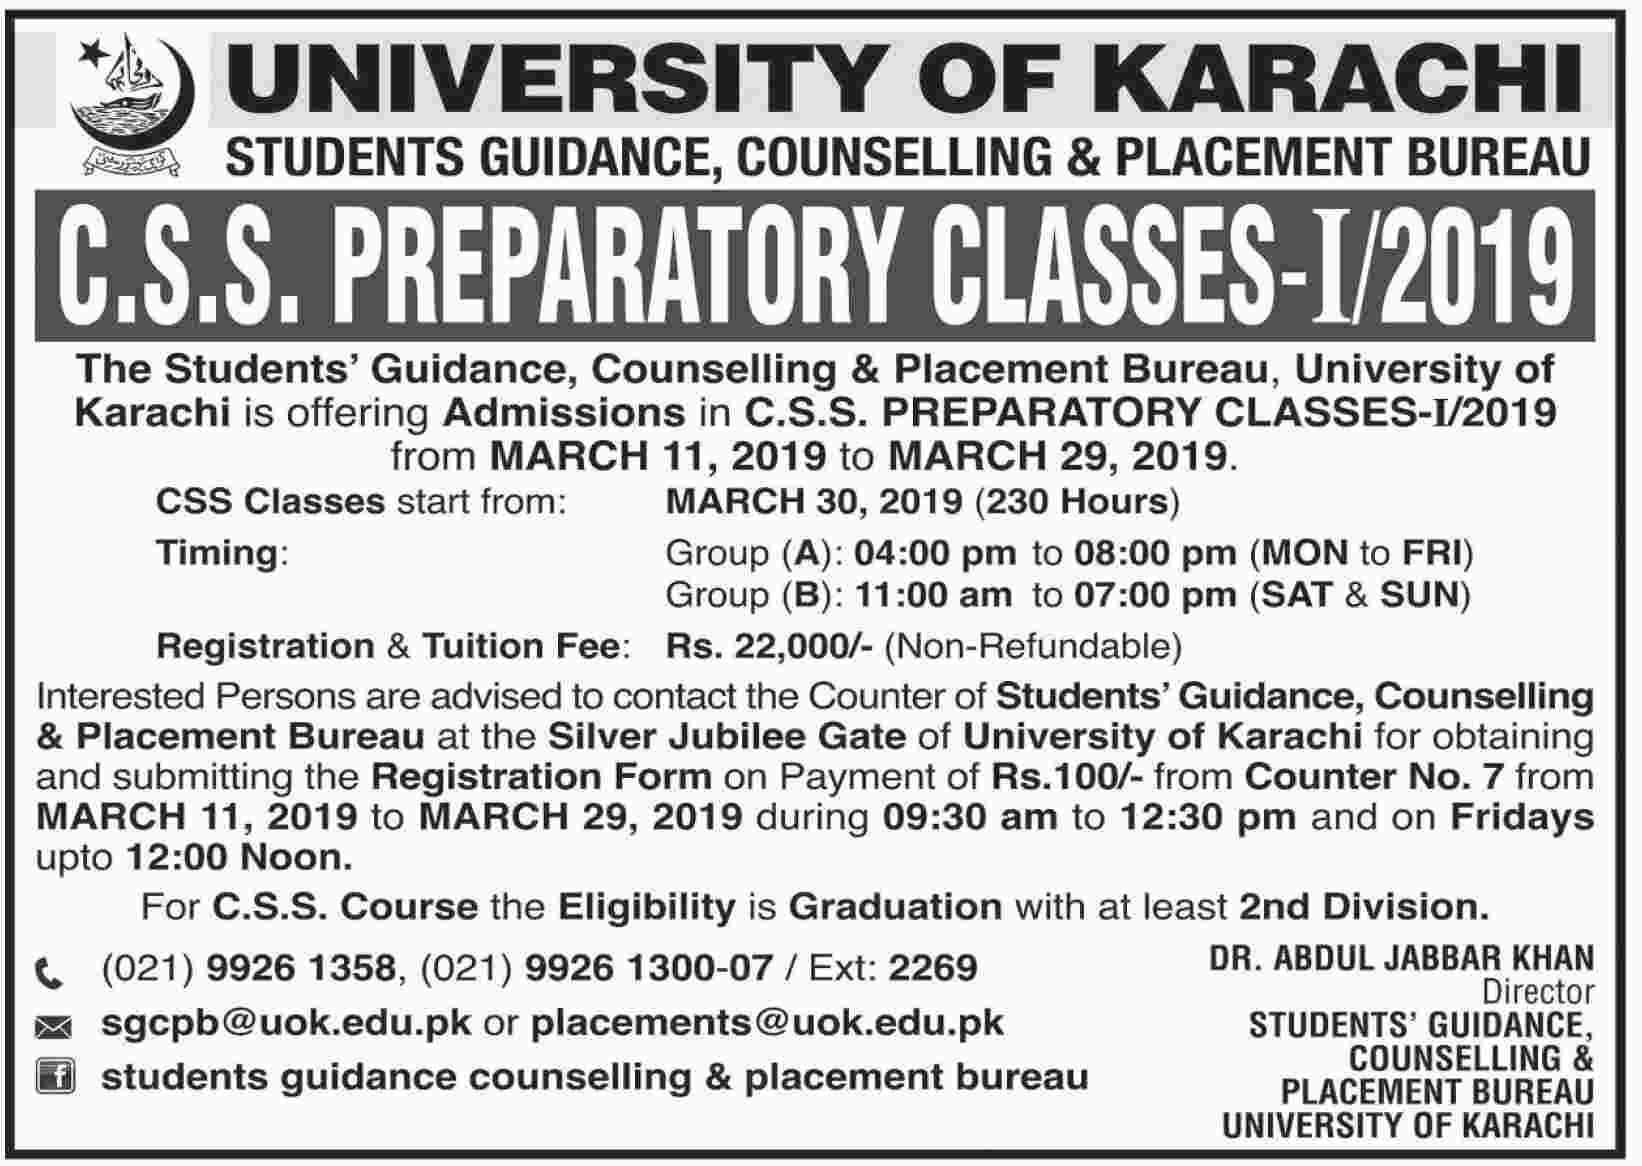 CSS Preparatory Classes 2019 Start at University of Karachi